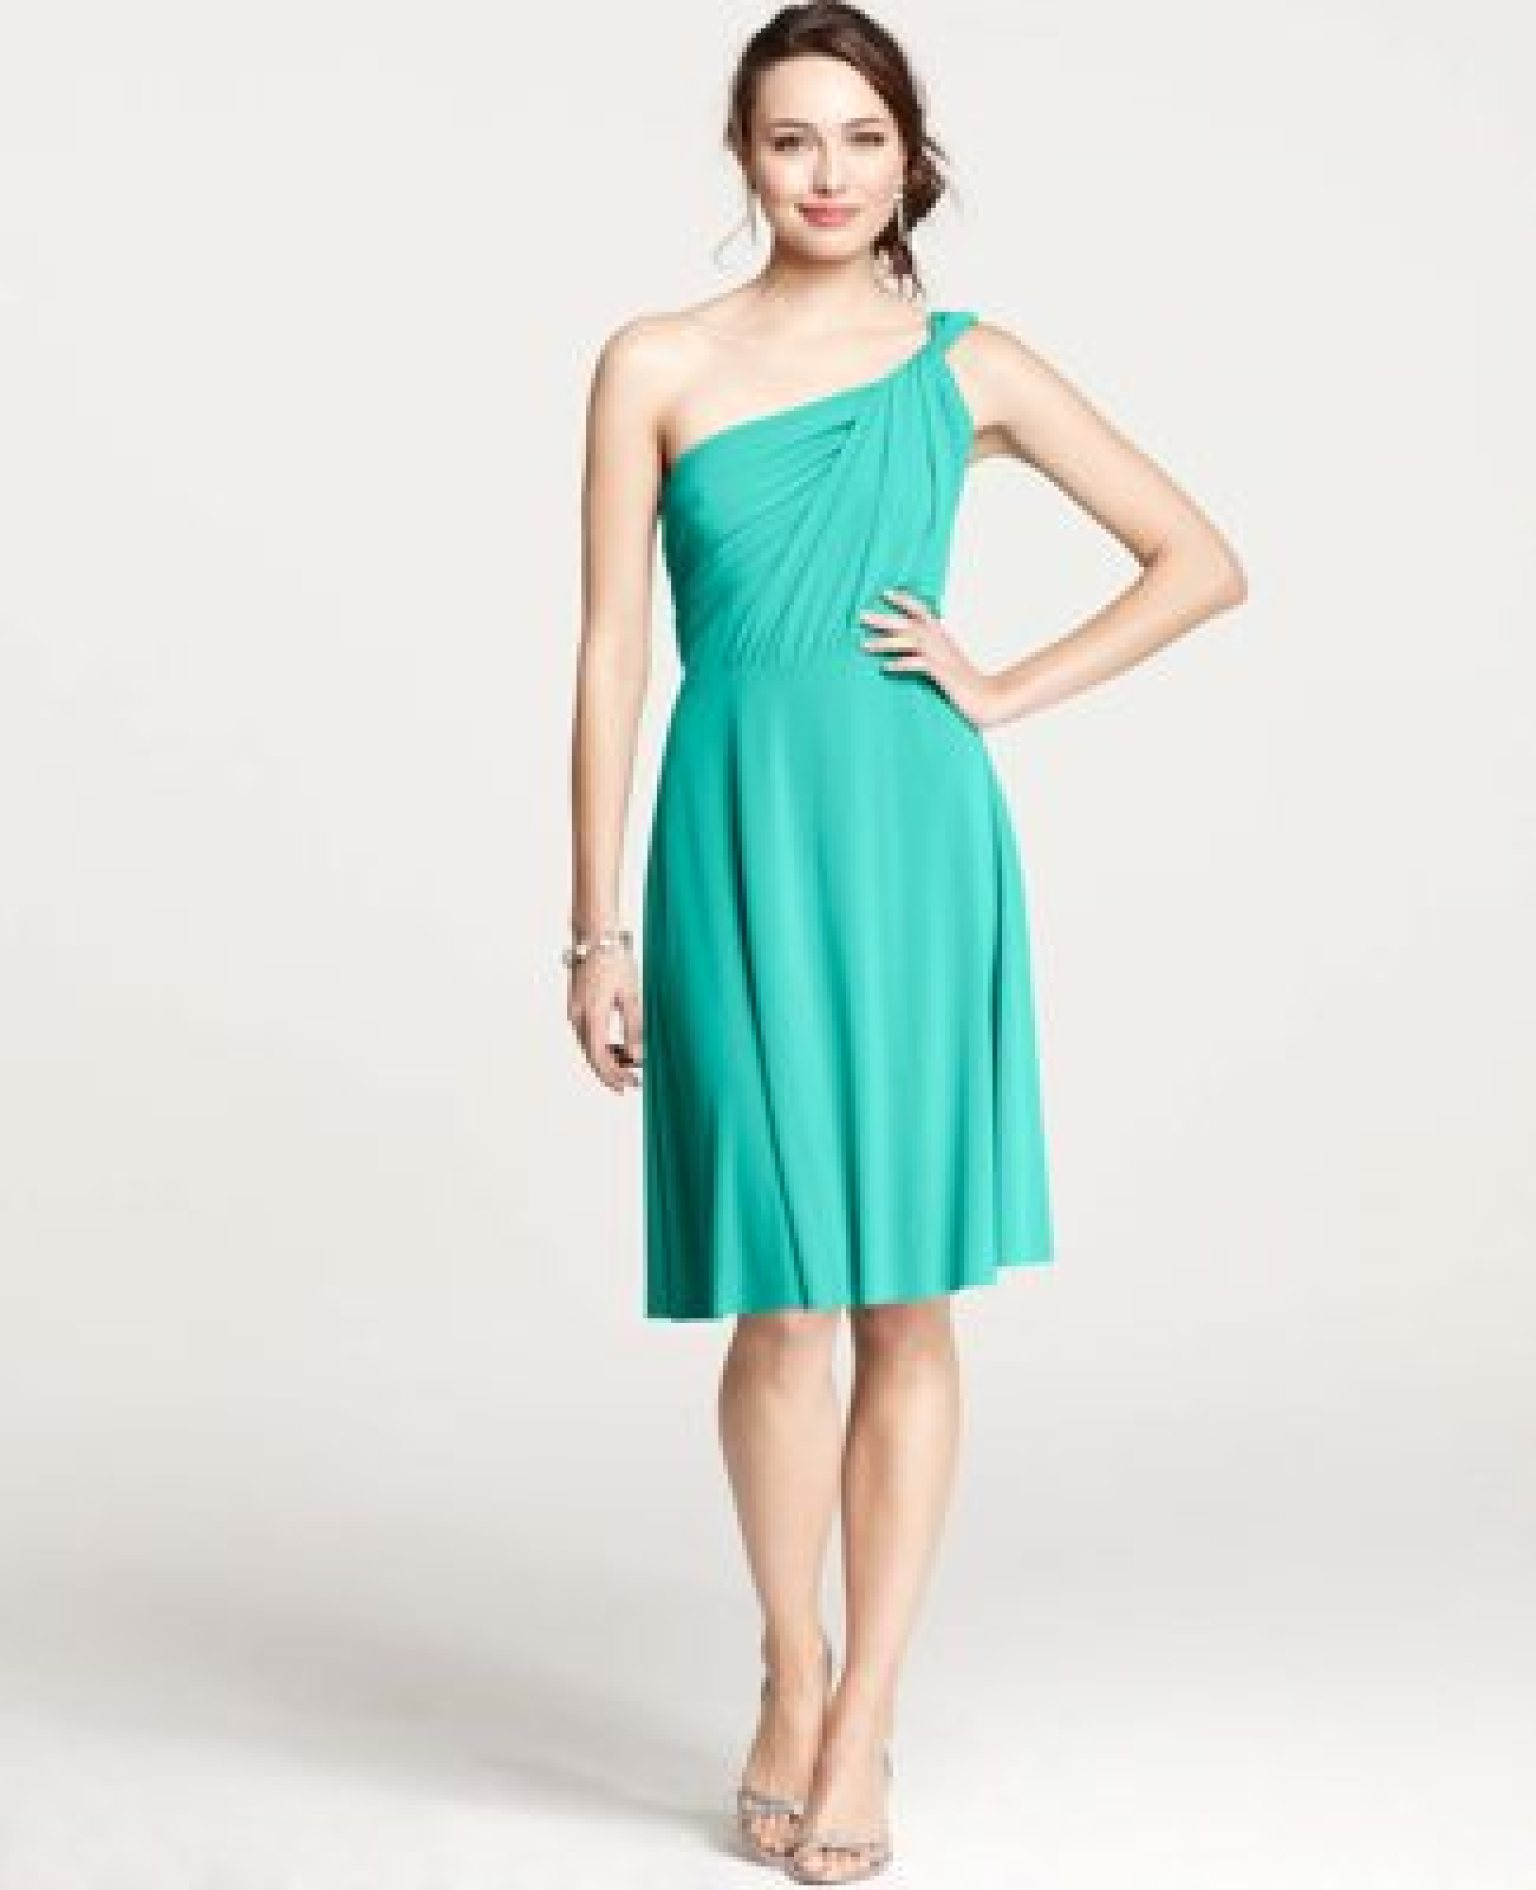 Wedding guest dresses for summer affairs photos huffpost for Dress for a summer wedding